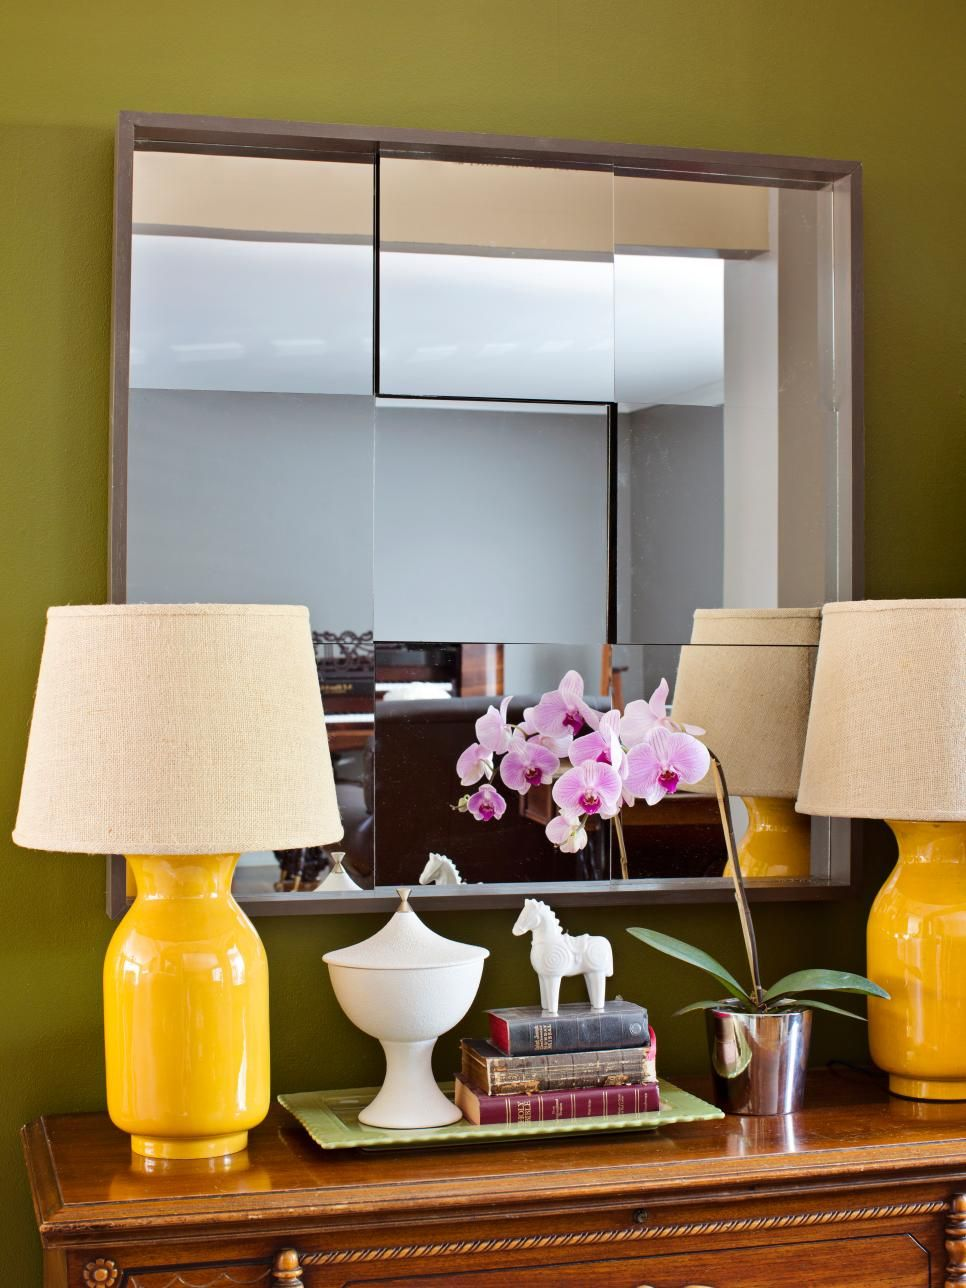 Rooms Viewer Diy Mirror Wall Mirrors Decor Home